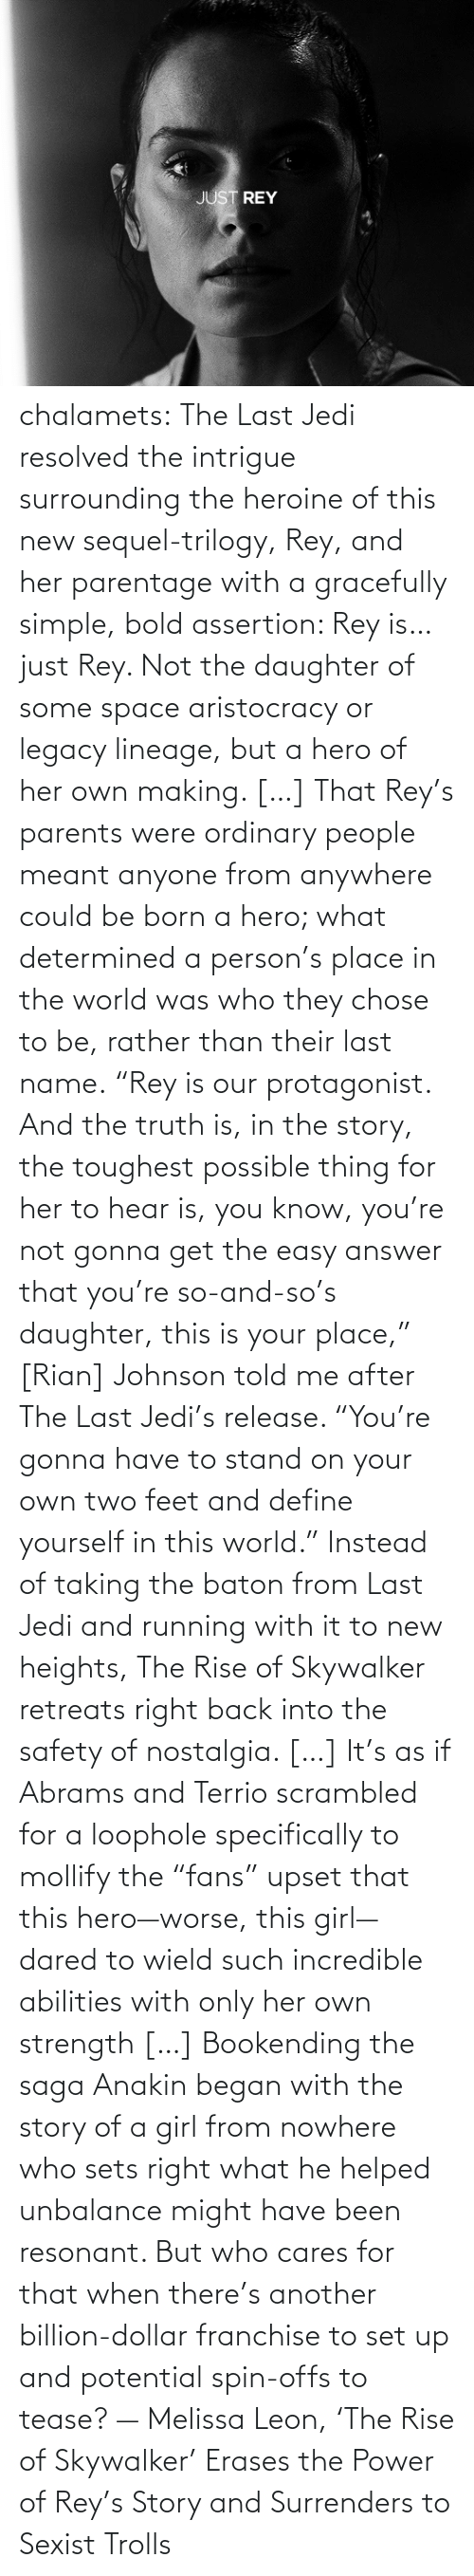 "people: chalamets:  The Last Jedi resolved the intrigue surrounding the heroine of this new sequel-trilogy, Rey, and her parentage with a gracefully simple, bold assertion: Rey is… just Rey. Not the daughter of some space aristocracy or legacy lineage, but a hero of her own making. […] That Rey's parents were ordinary people meant anyone from anywhere could be born a hero; what determined a person's place in the world was who they chose to be, rather than their last name. ""Rey is our protagonist. And the truth is, in the story, the toughest possible thing for her to hear is, you know, you're not gonna get the easy answer that you're so-and-so's daughter, this is your place,"" [Rian] Johnson told me after The Last Jedi's release. ""You're gonna have to stand on your own two feet and define yourself in this world."" Instead of taking the baton from Last Jedi and running with it to new heights, The Rise of Skywalker retreats right back into the safety of nostalgia. […] It's as if Abrams and Terrio scrambled for a loophole specifically to mollify the ""fans"" upset that this hero—worse, this girl—dared to wield such incredible abilities with only her own strength […] Bookending the saga Anakin began with the story of a girl from nowhere who sets right what he helped unbalance might have been resonant. But who cares for that when there's another billion-dollar franchise to set up and potential spin-offs to tease? — Melissa Leon, 'The Rise of Skywalker' Erases the Power of Rey's Story and Surrenders to Sexist Trolls"